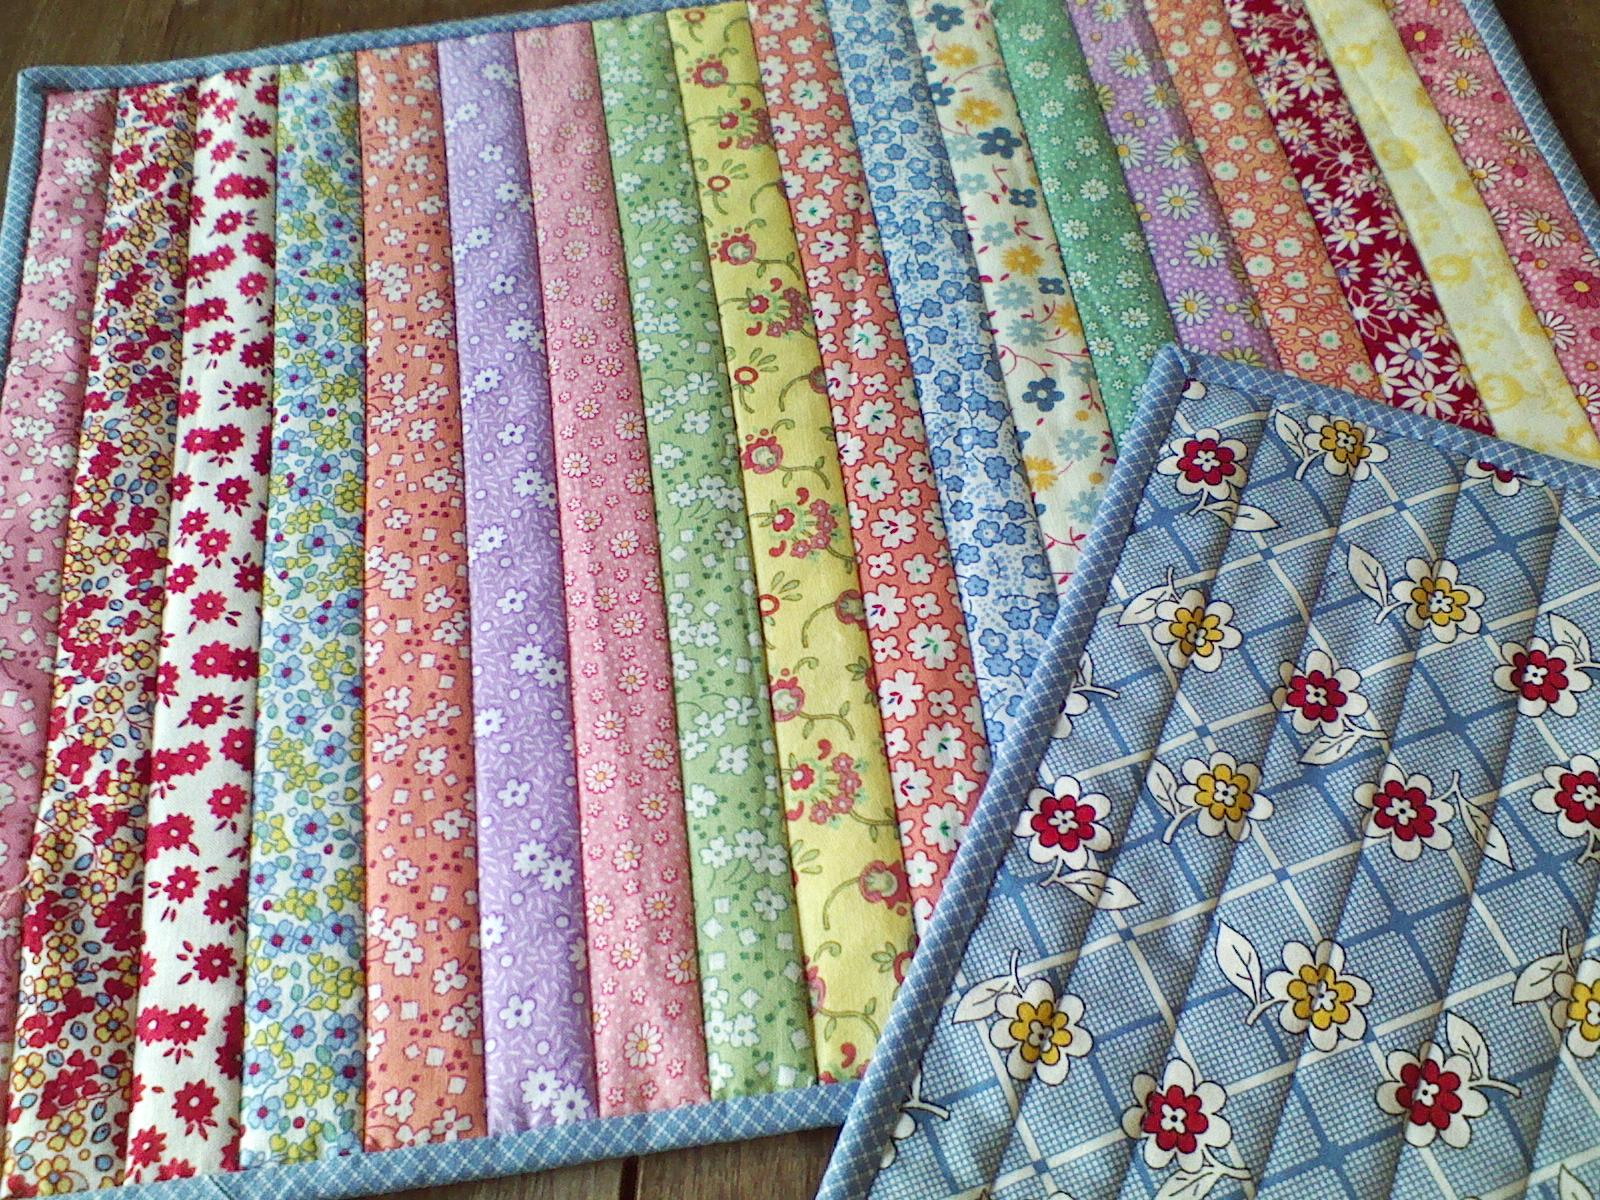 quilt tko star youtube watch patchwork patchworkov prav